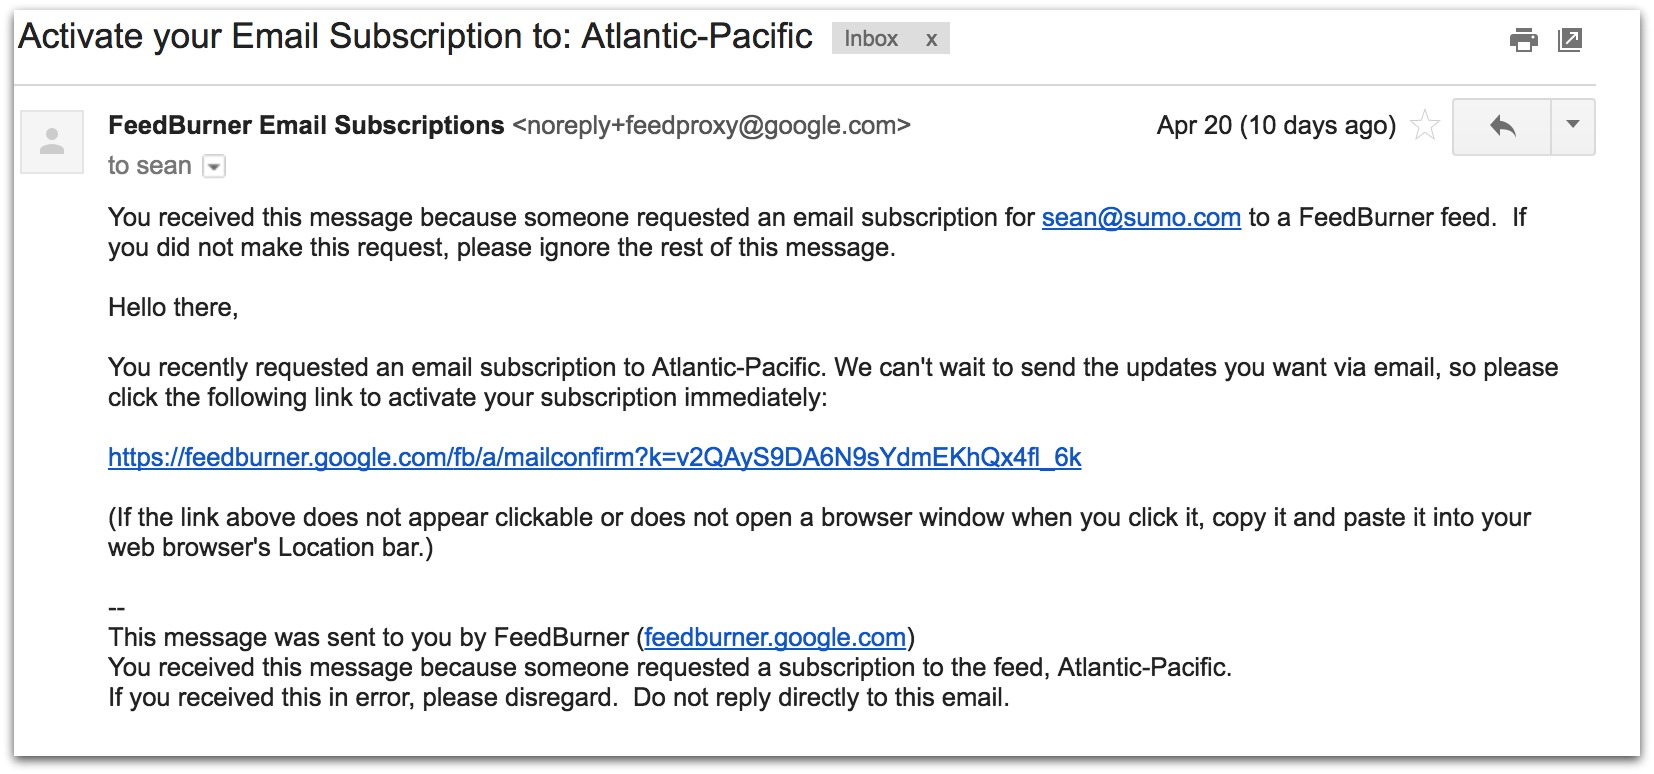 Screenshot showing a double opt-in email sent by Atlantic-Pacific